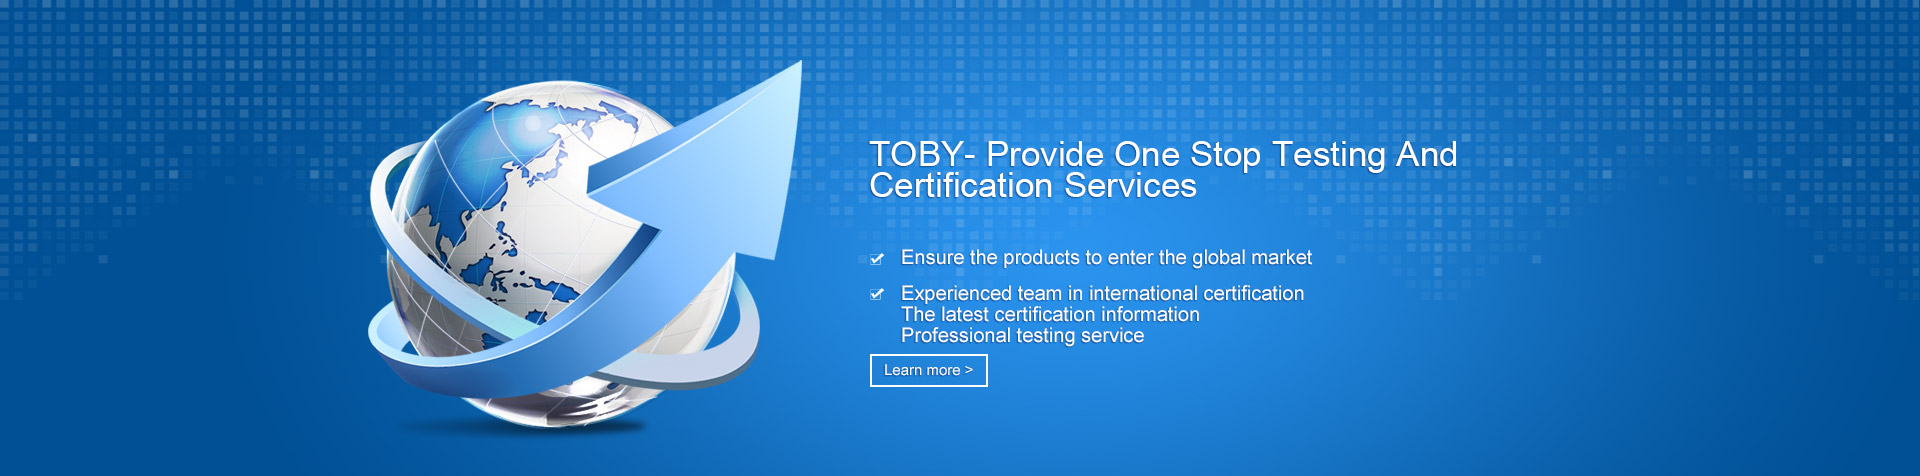 TOBY-stop testing and certific